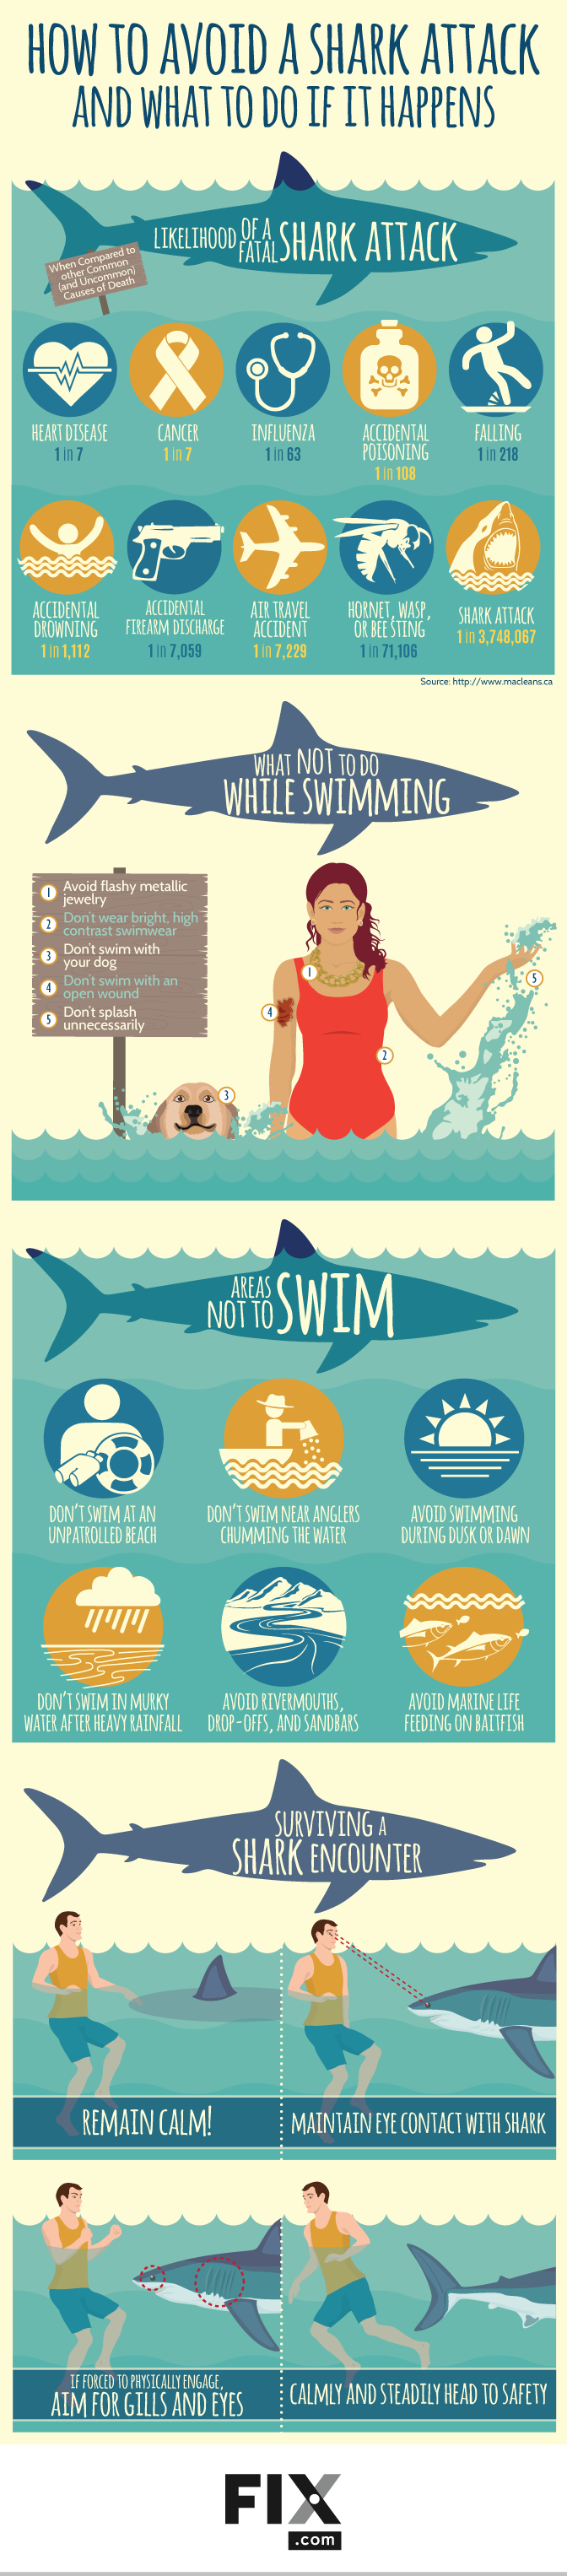 How to Avoid a Shark Attack And What to Do if it Happens #infographic